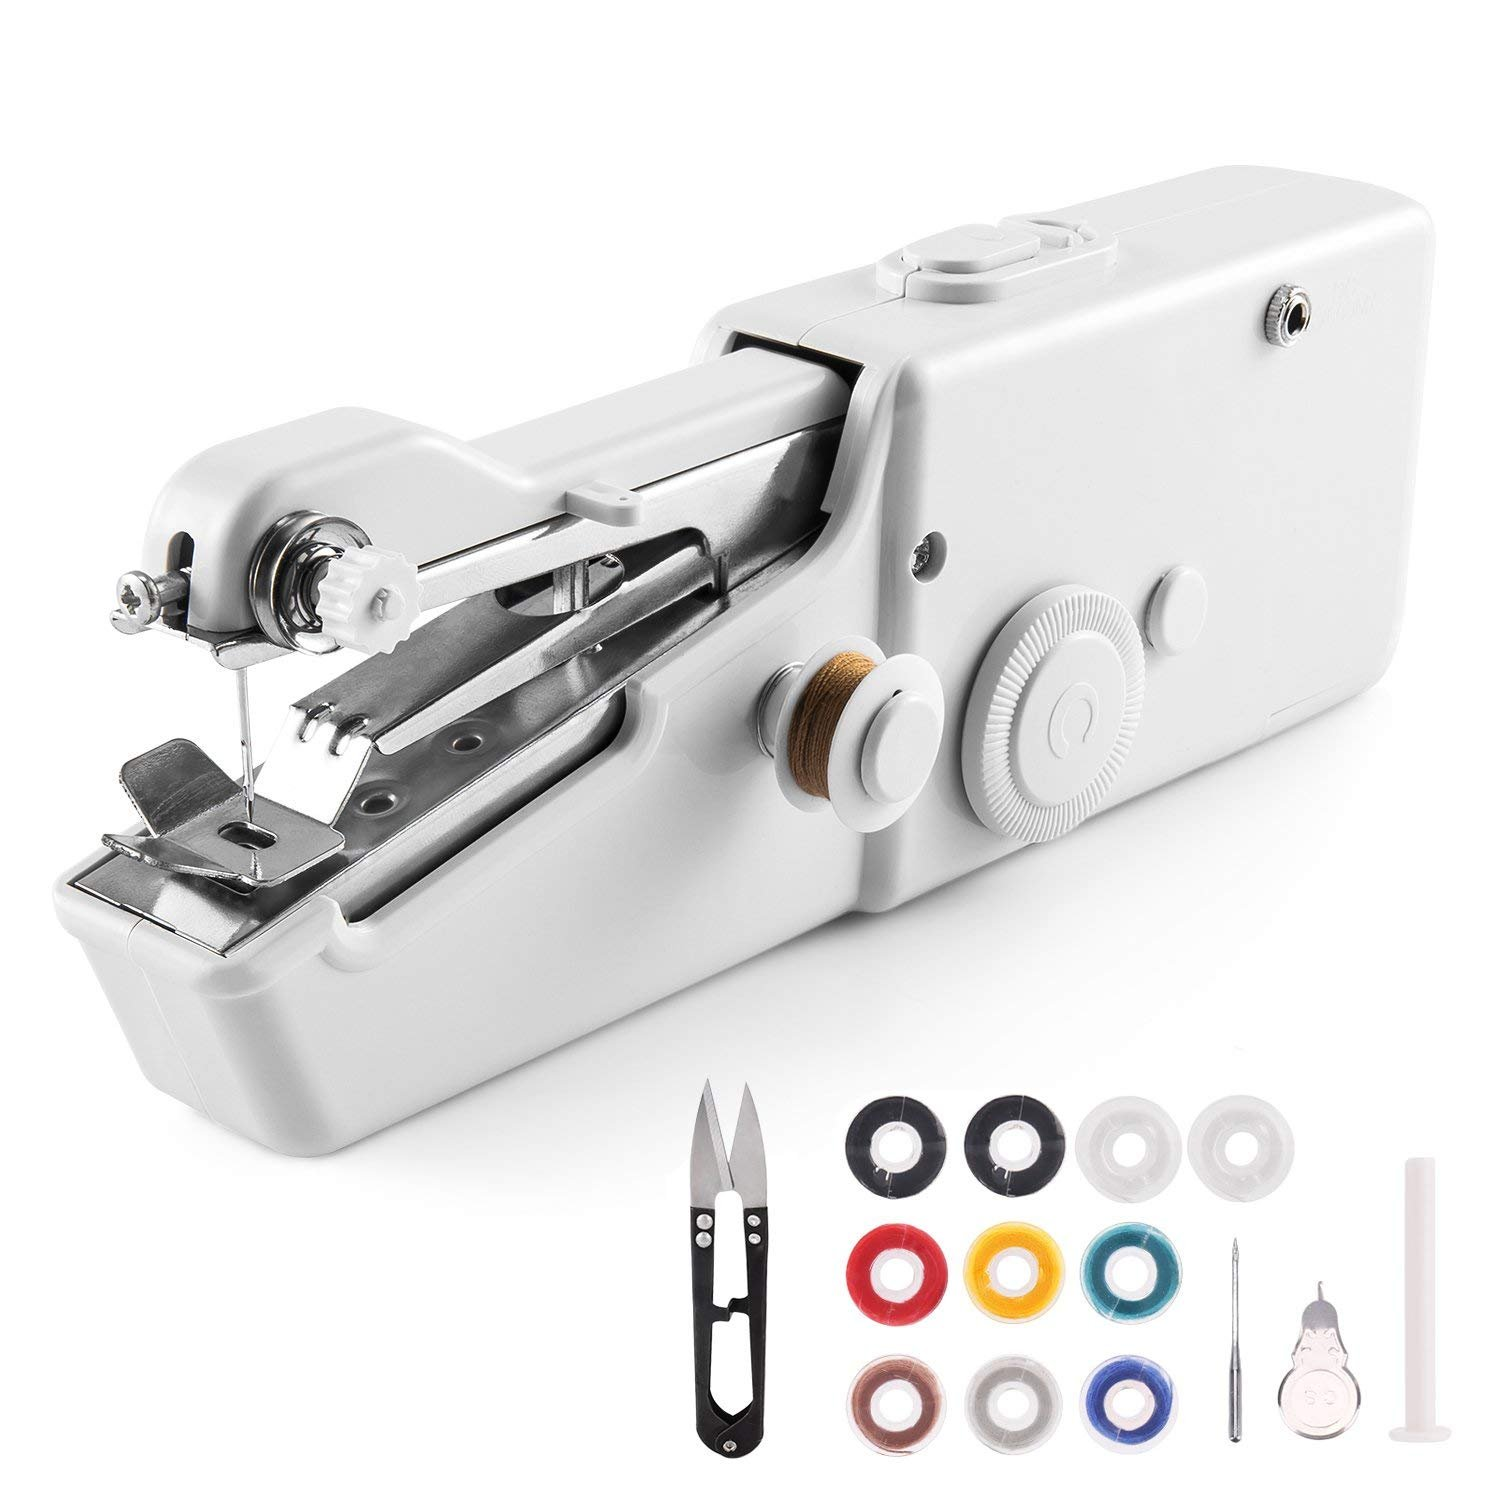 Best Rated In Sewing Machines Helpful Customer Reviews Kenmore Model 12 Machine Threading Diagram Handheld Mini Cordless Electric Quick Handy Stitch For Fabric